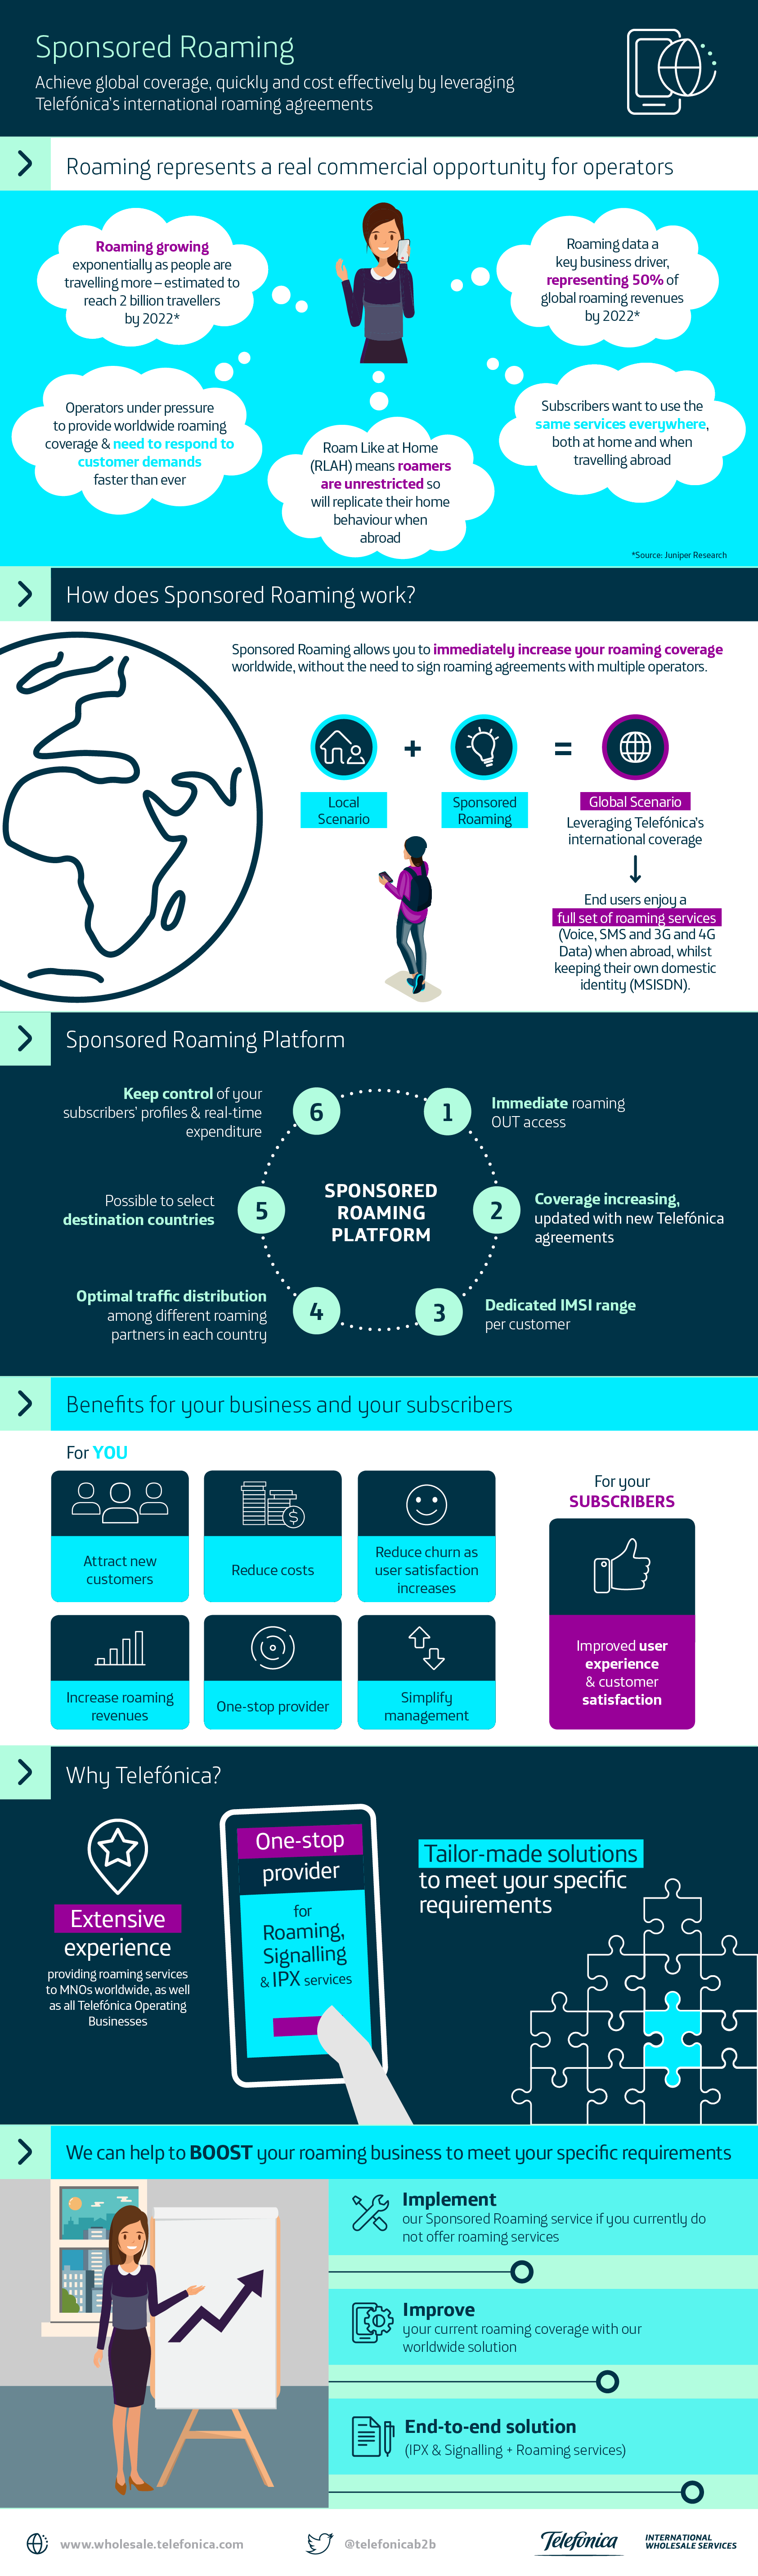 Sponsored Roaming Infographic